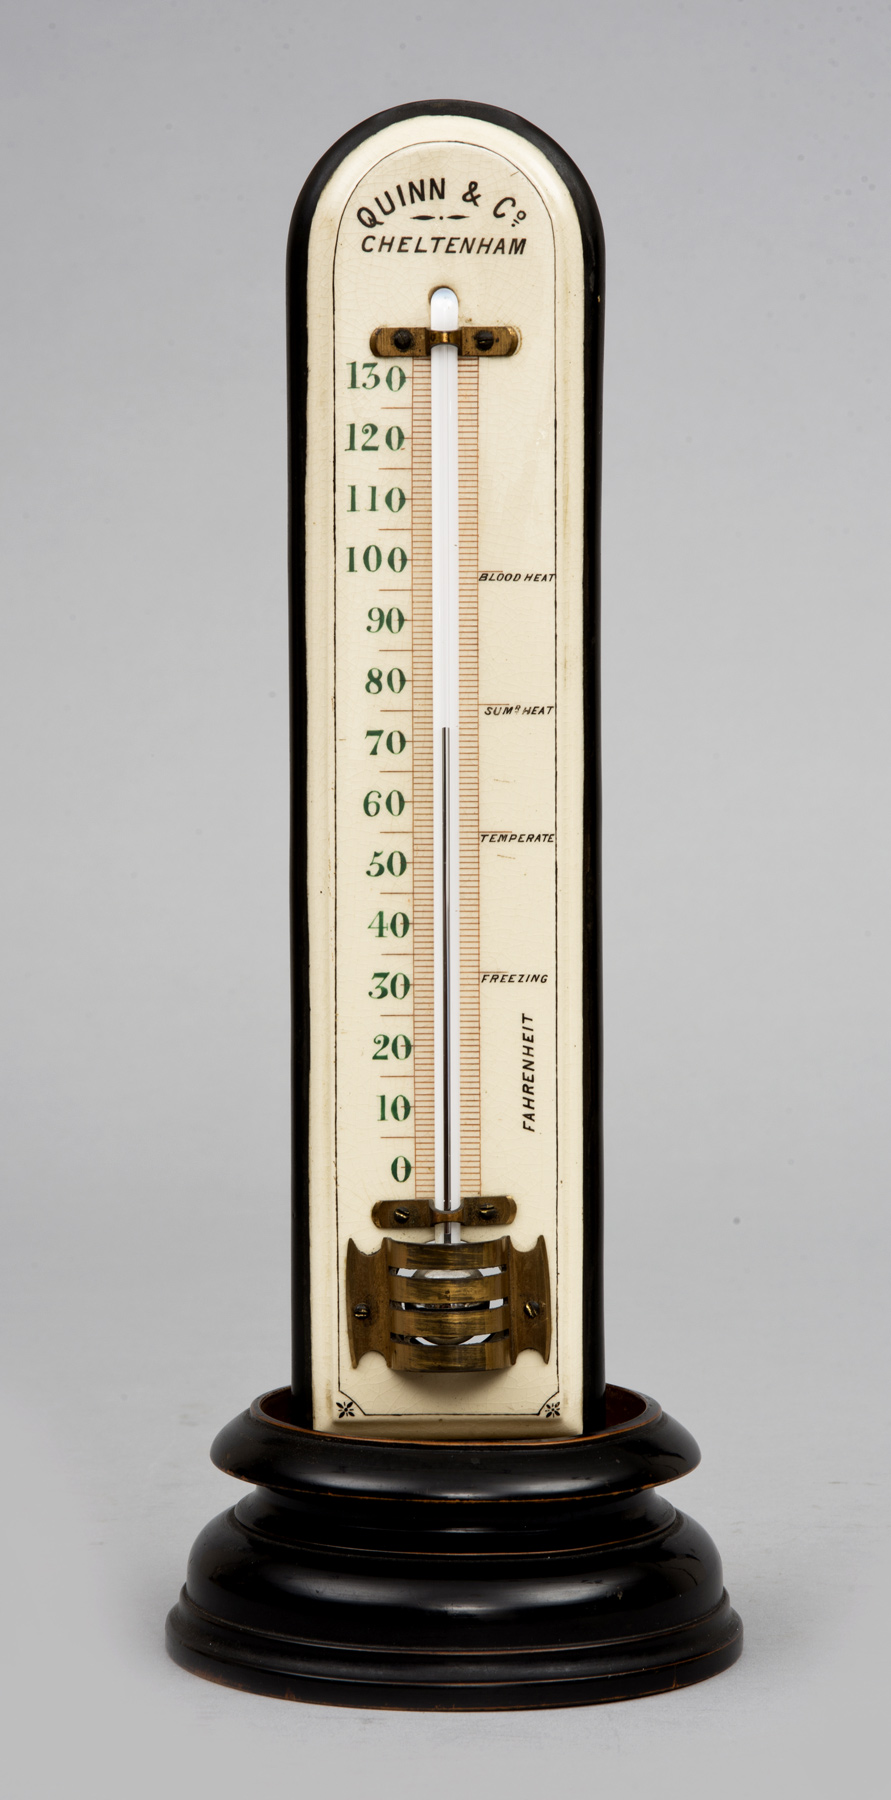 187 Product 187 Antique Large Thermometer On Stand Circa 1880